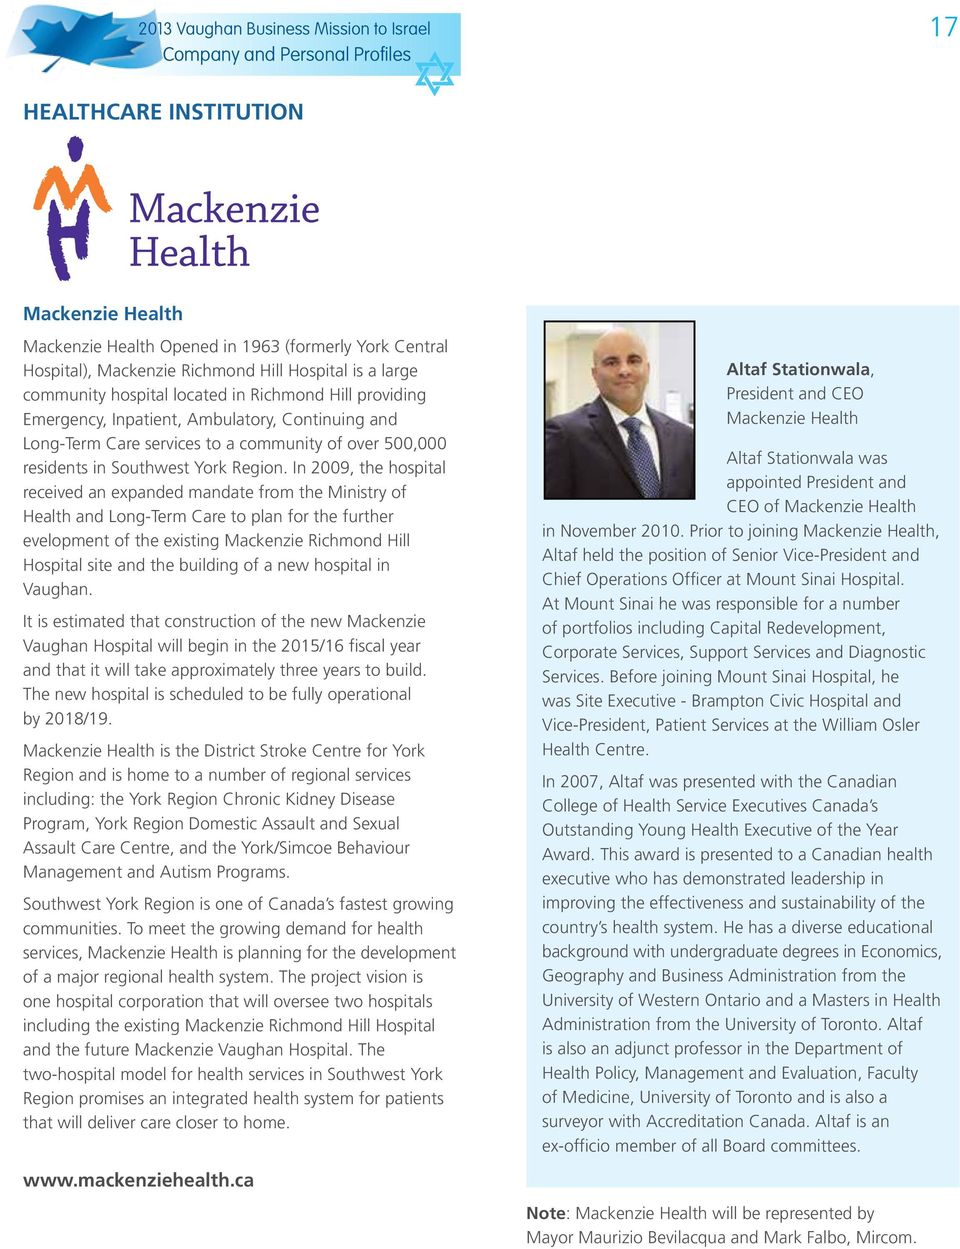 In 2009, the hospital received an expanded mandate from the Ministry of Health and Long-Term Care to plan for the further evelopment of the existing Mackenzie Richmond Hill 21,173 (8%) Hospital site